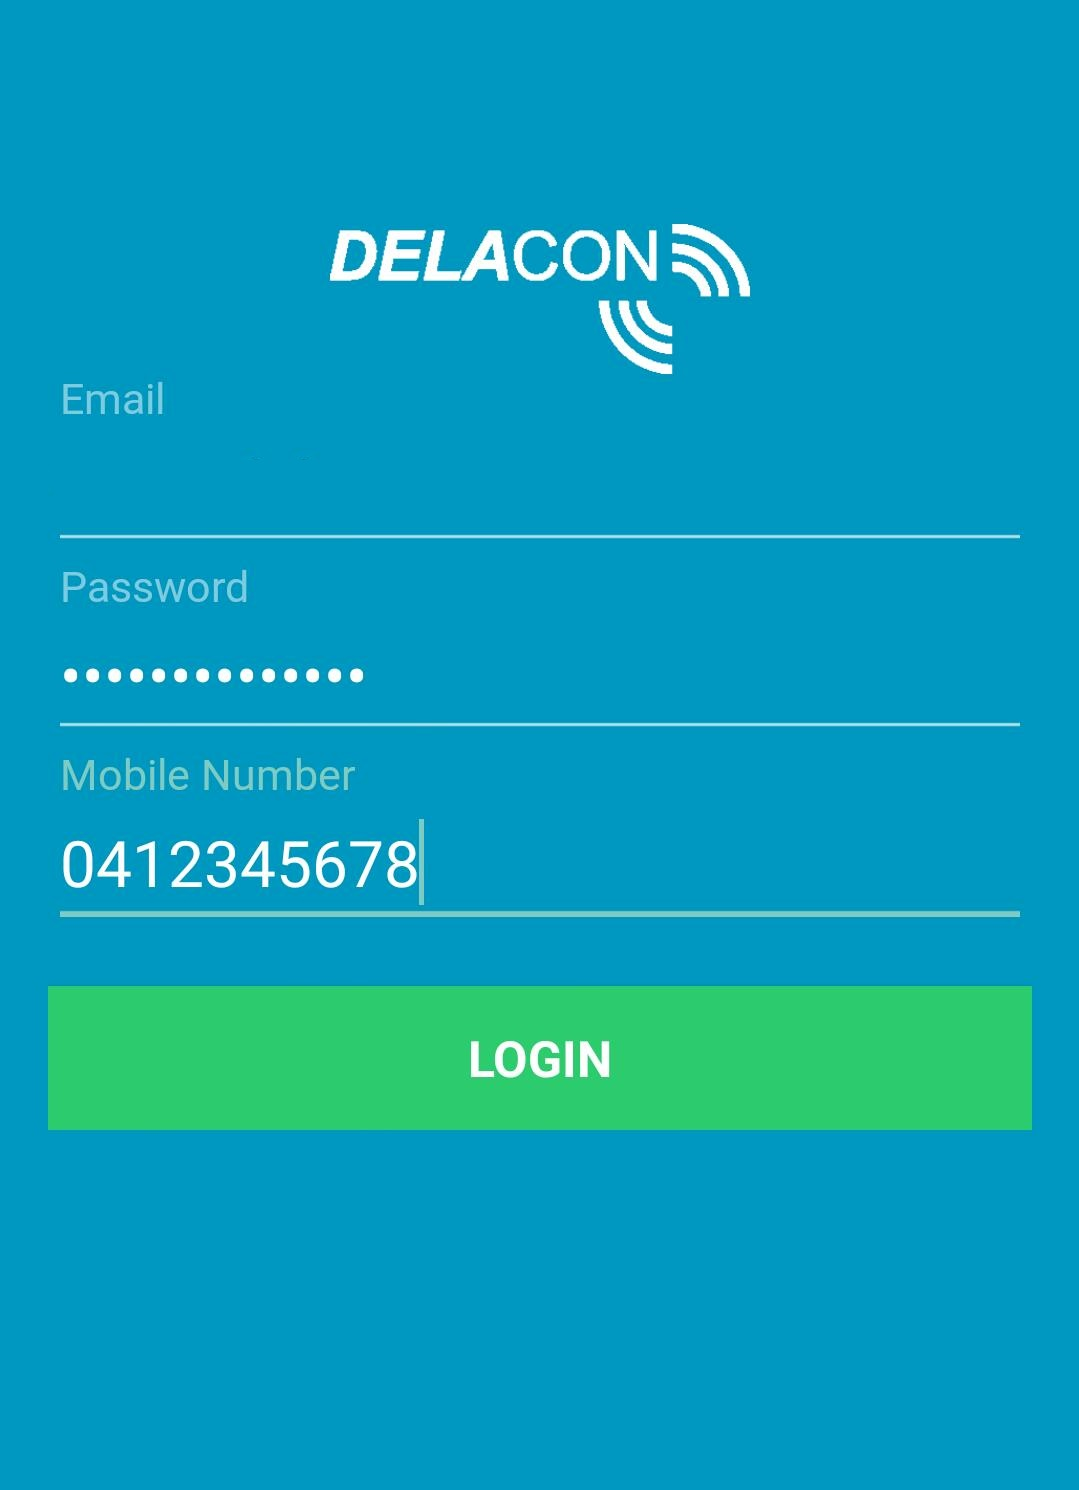 Delacon Android App – Login Screen